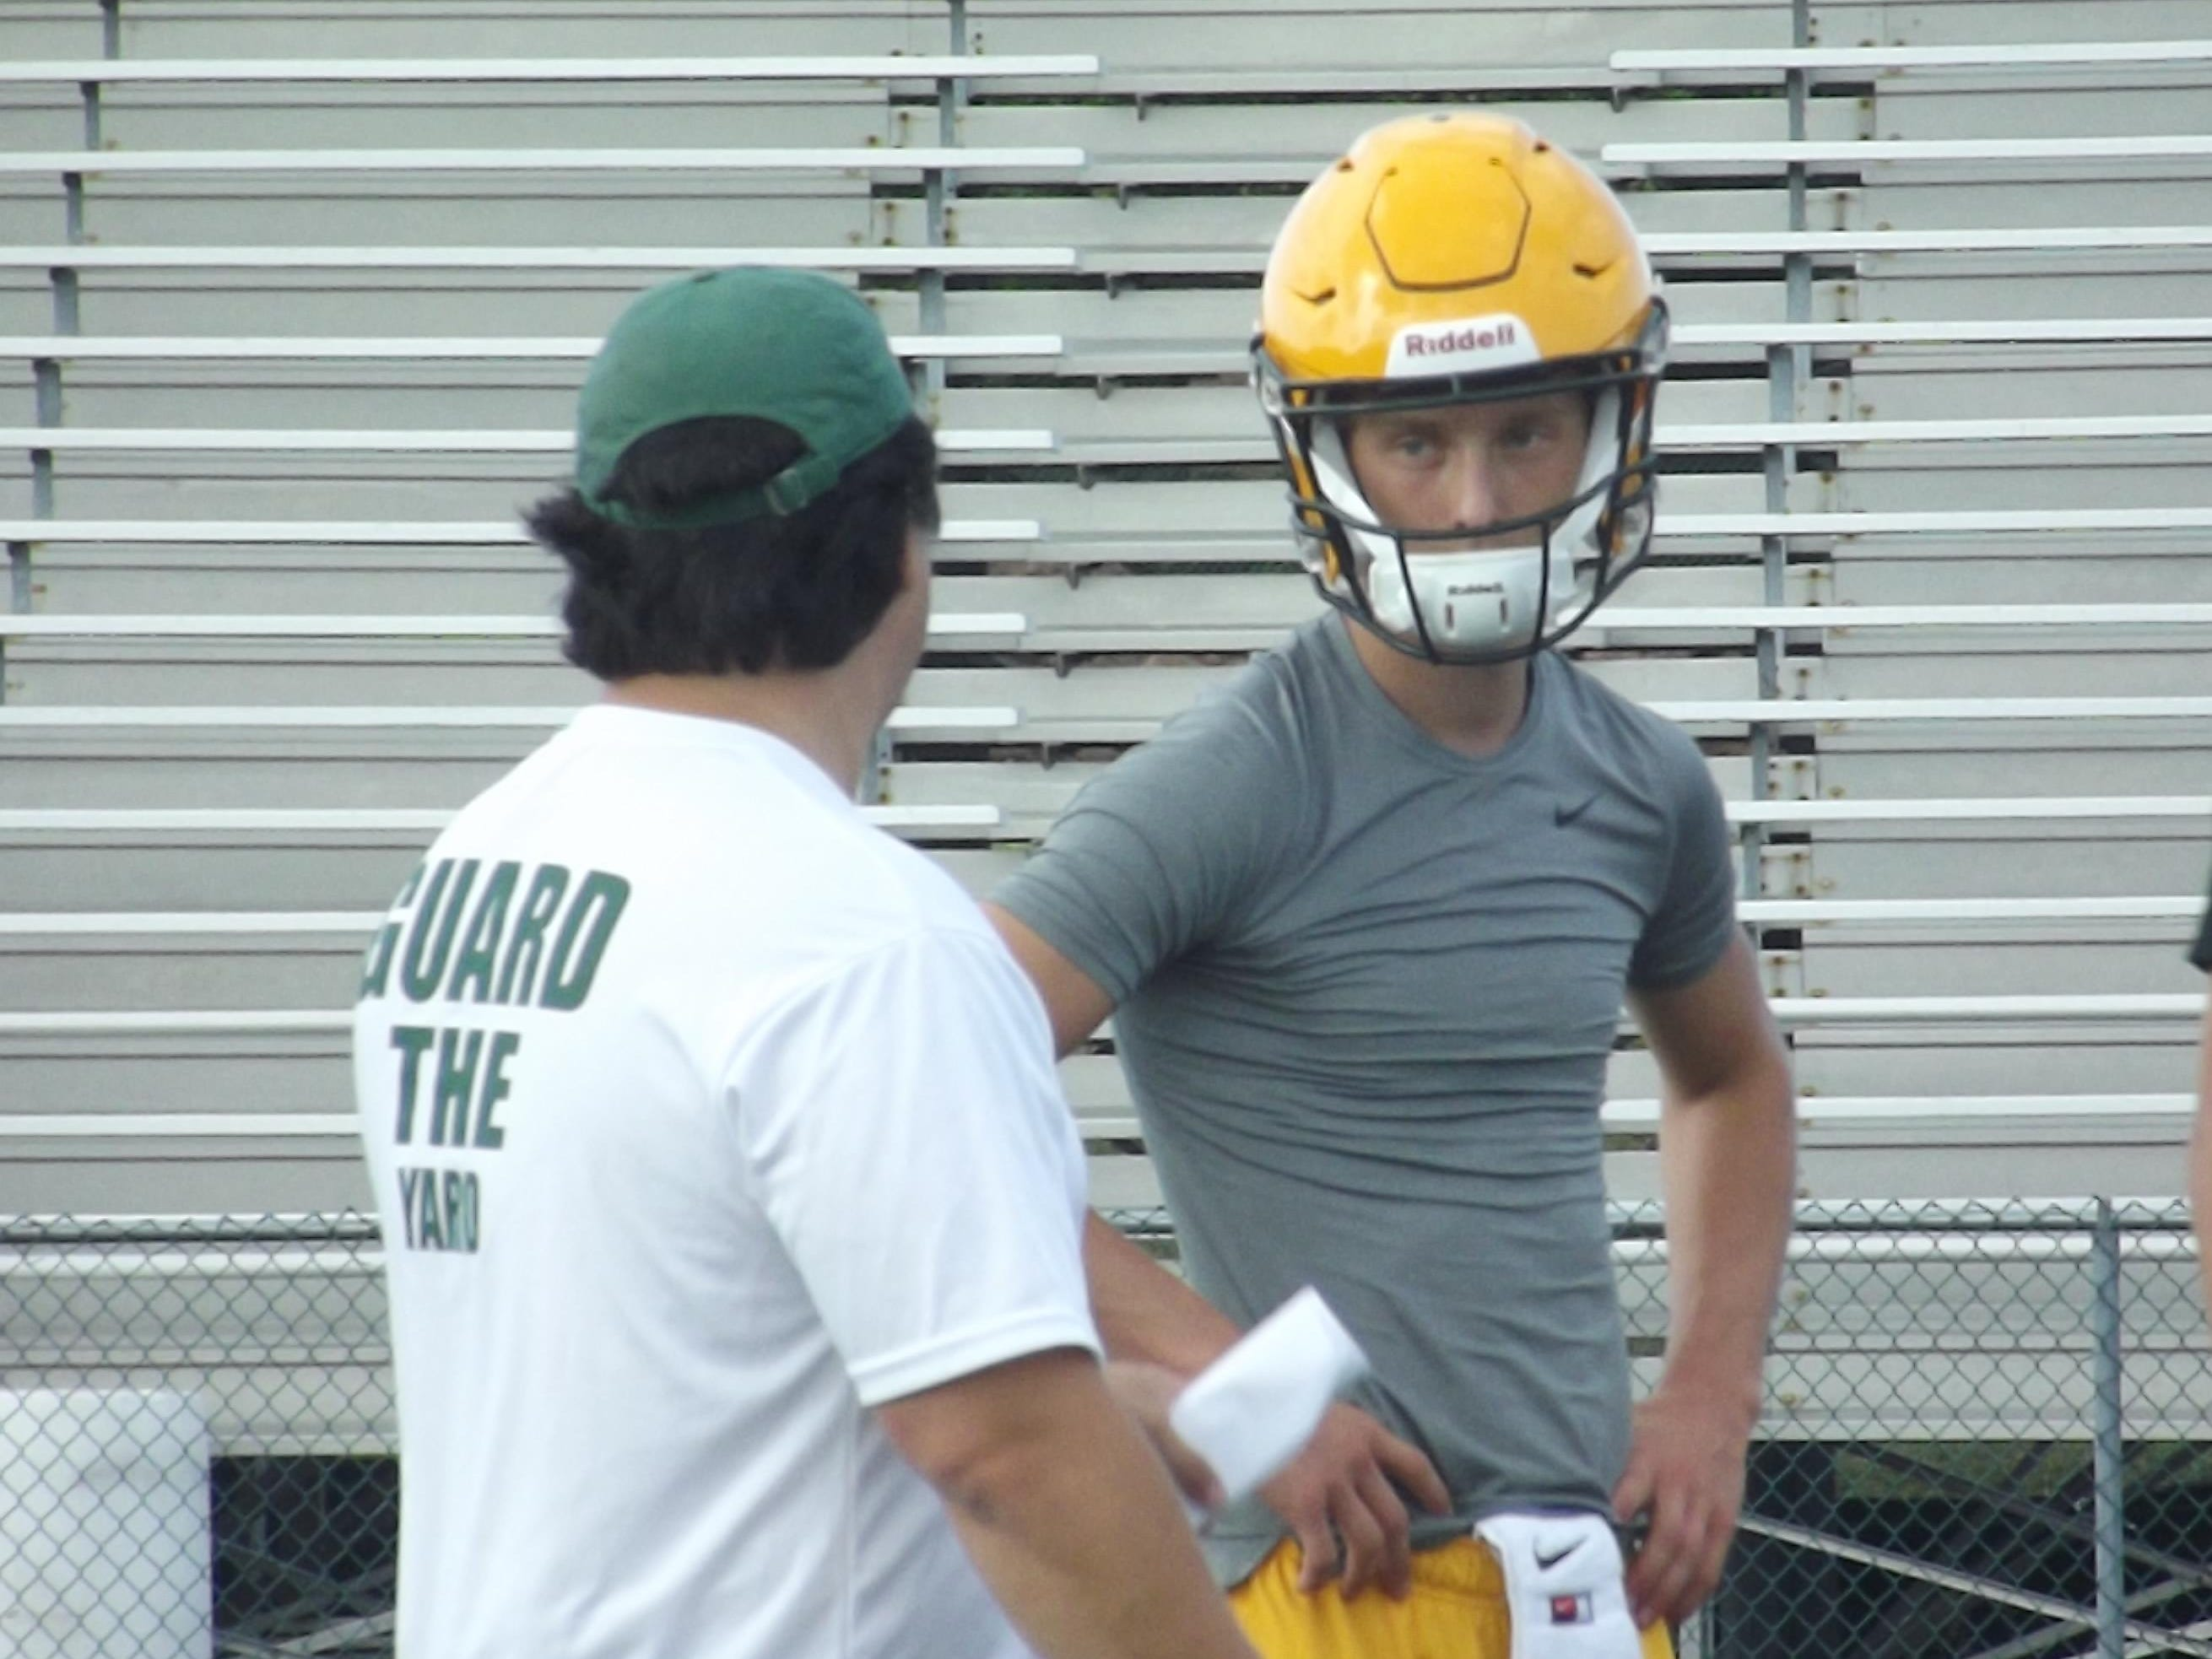 Senior Will Ark receives instruction from Ashwaubenon assistant coach Chad VanLaanen at practice Wednesday. Ark is expected to replace James Morgan as the team's starting quarterback.